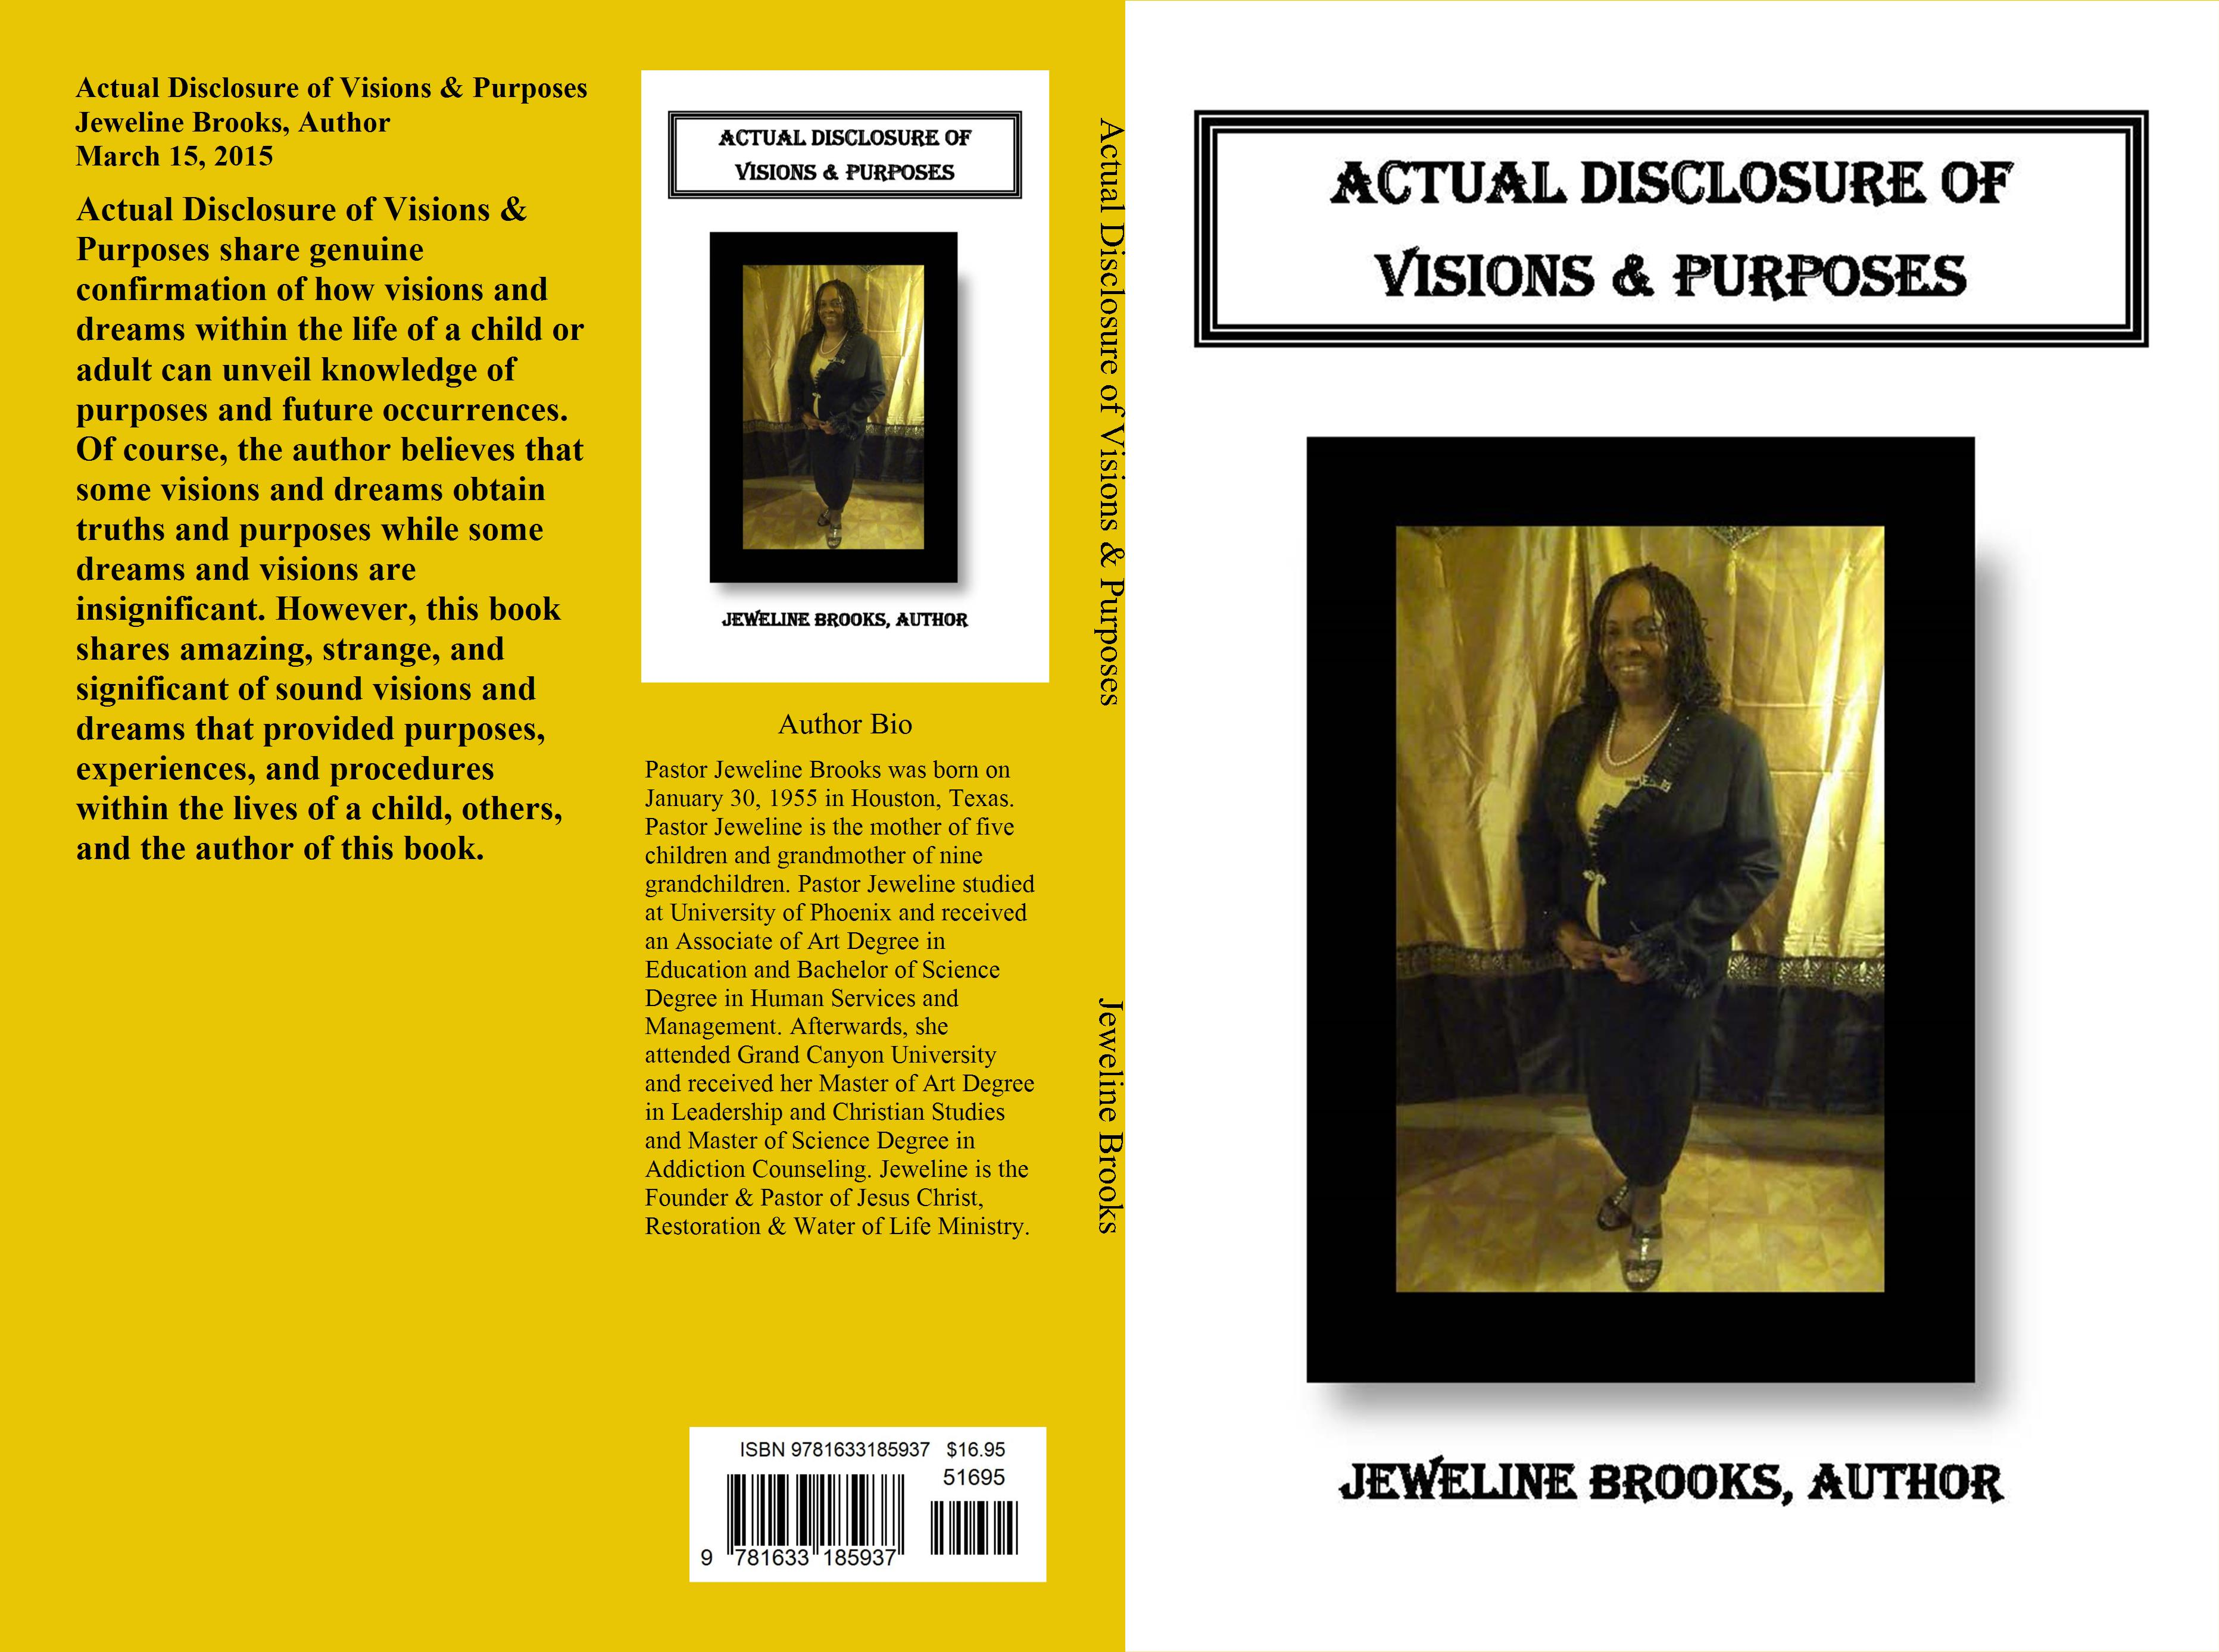 ACTUAL DISCLOSURE OF VISIONS & PURPOSES cover image